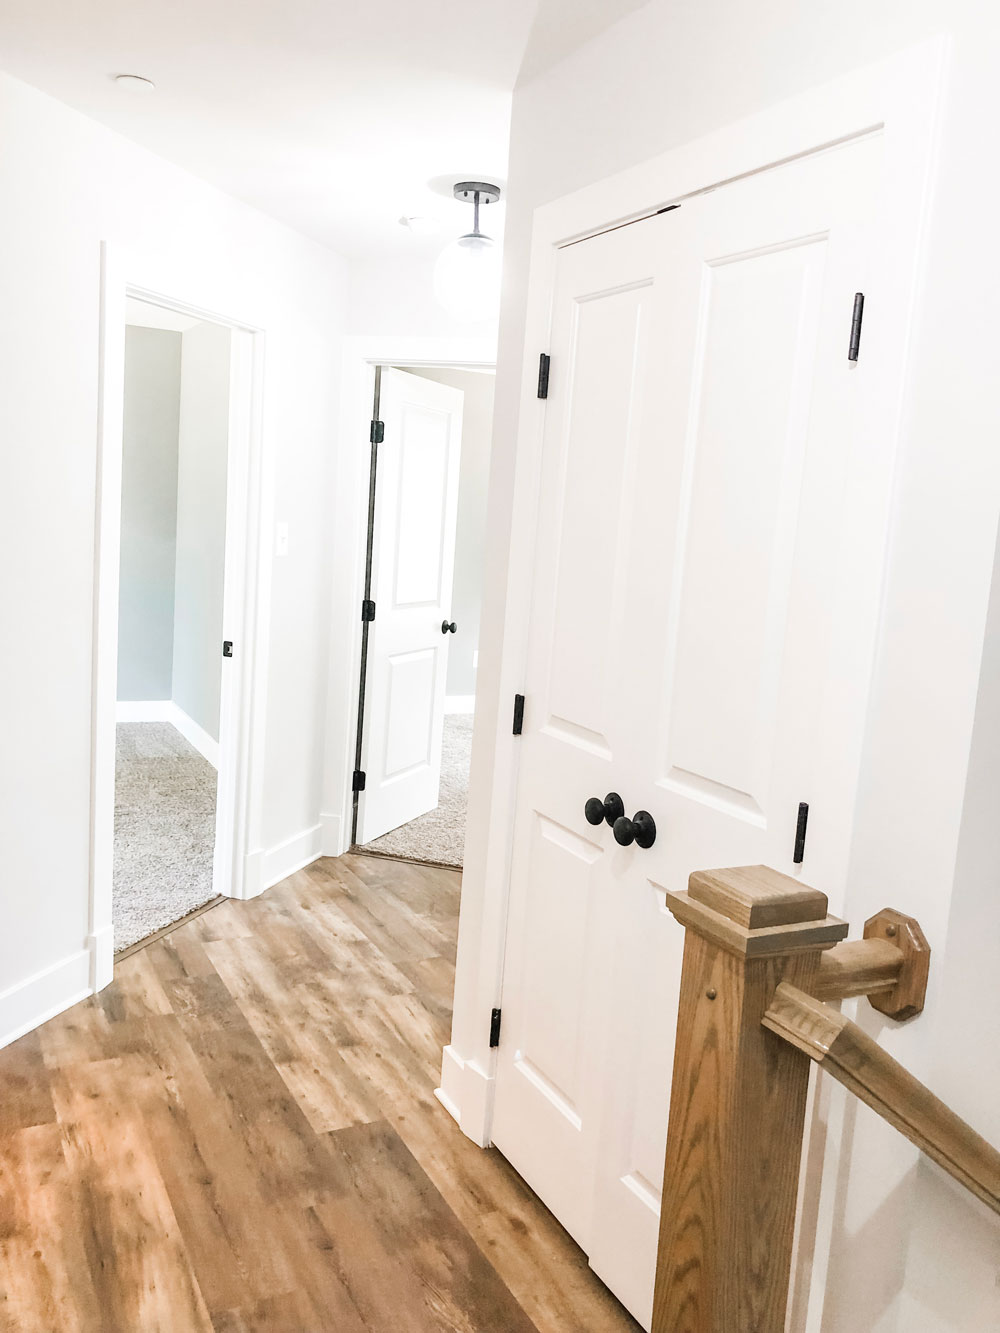 Custom home tour photos. This photo shows the upstairs hallway. The hall has luxury vinyl flooring in a medium tone. There is a large two door linen closet with black knobs.